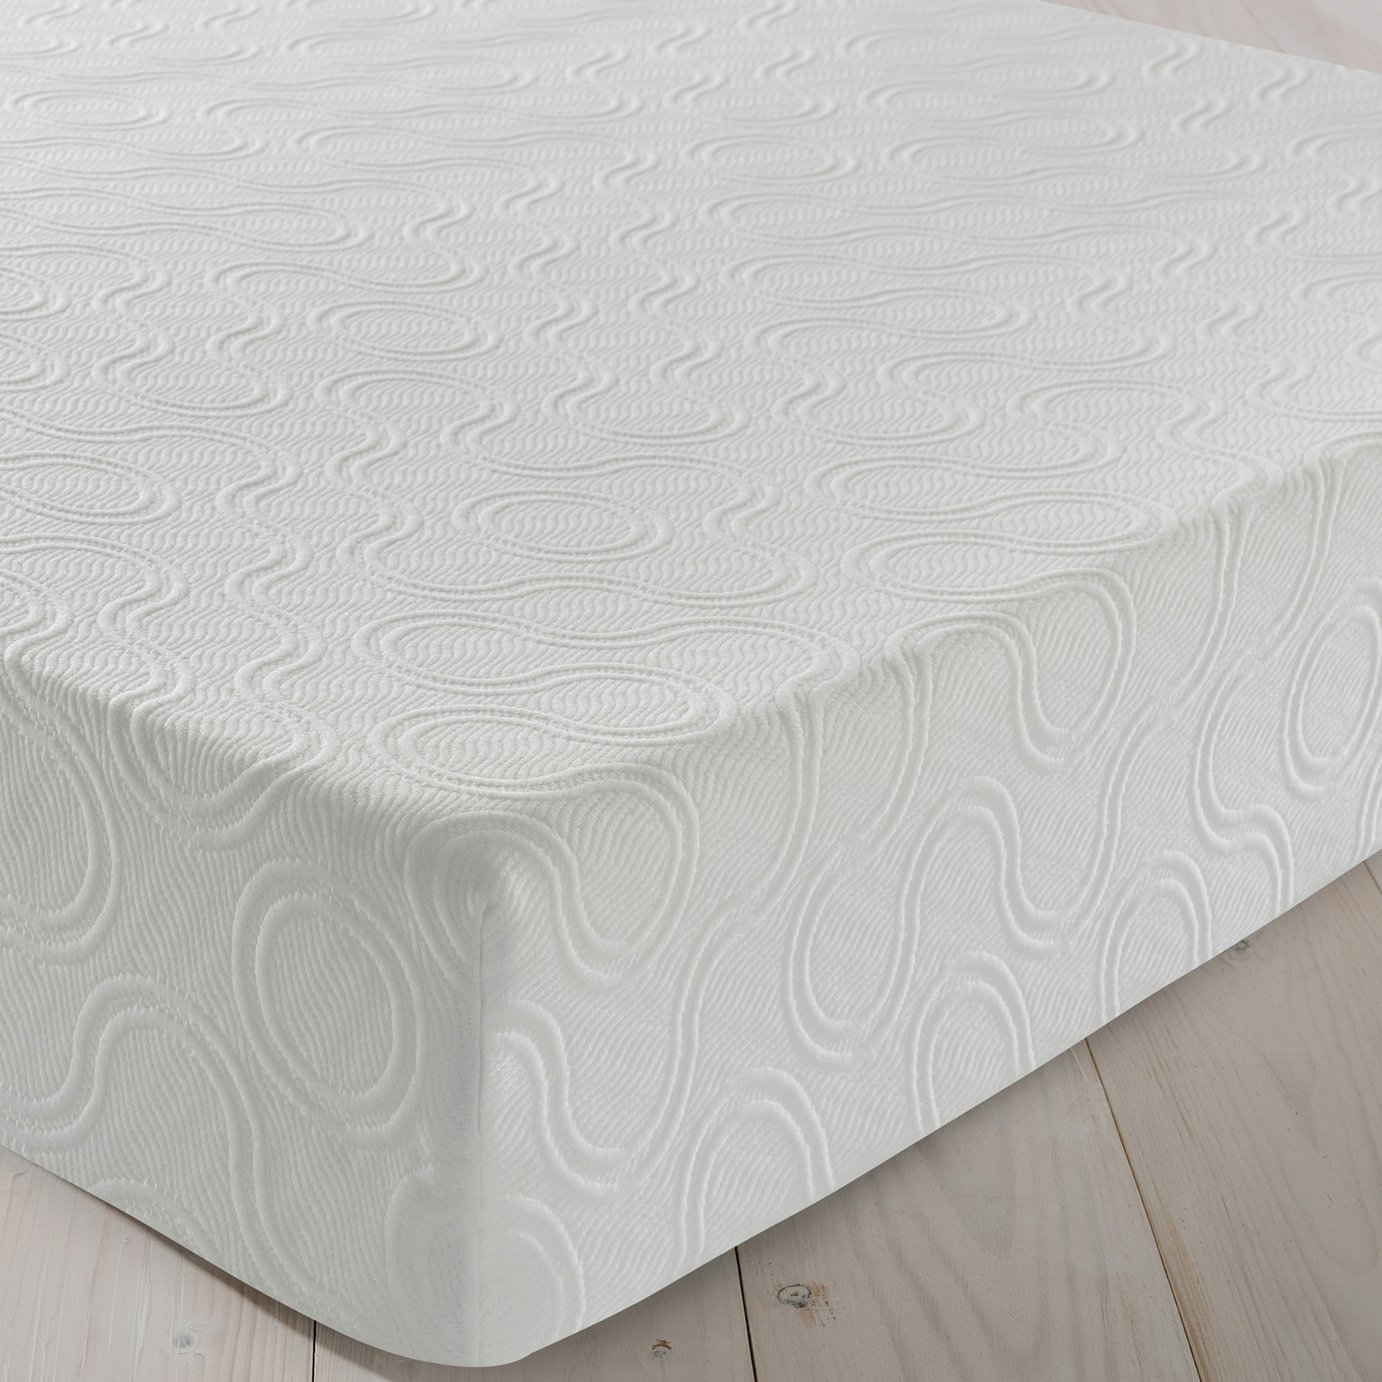 Silentnight 7 Zoned Kingsize Memory Foam Mattress